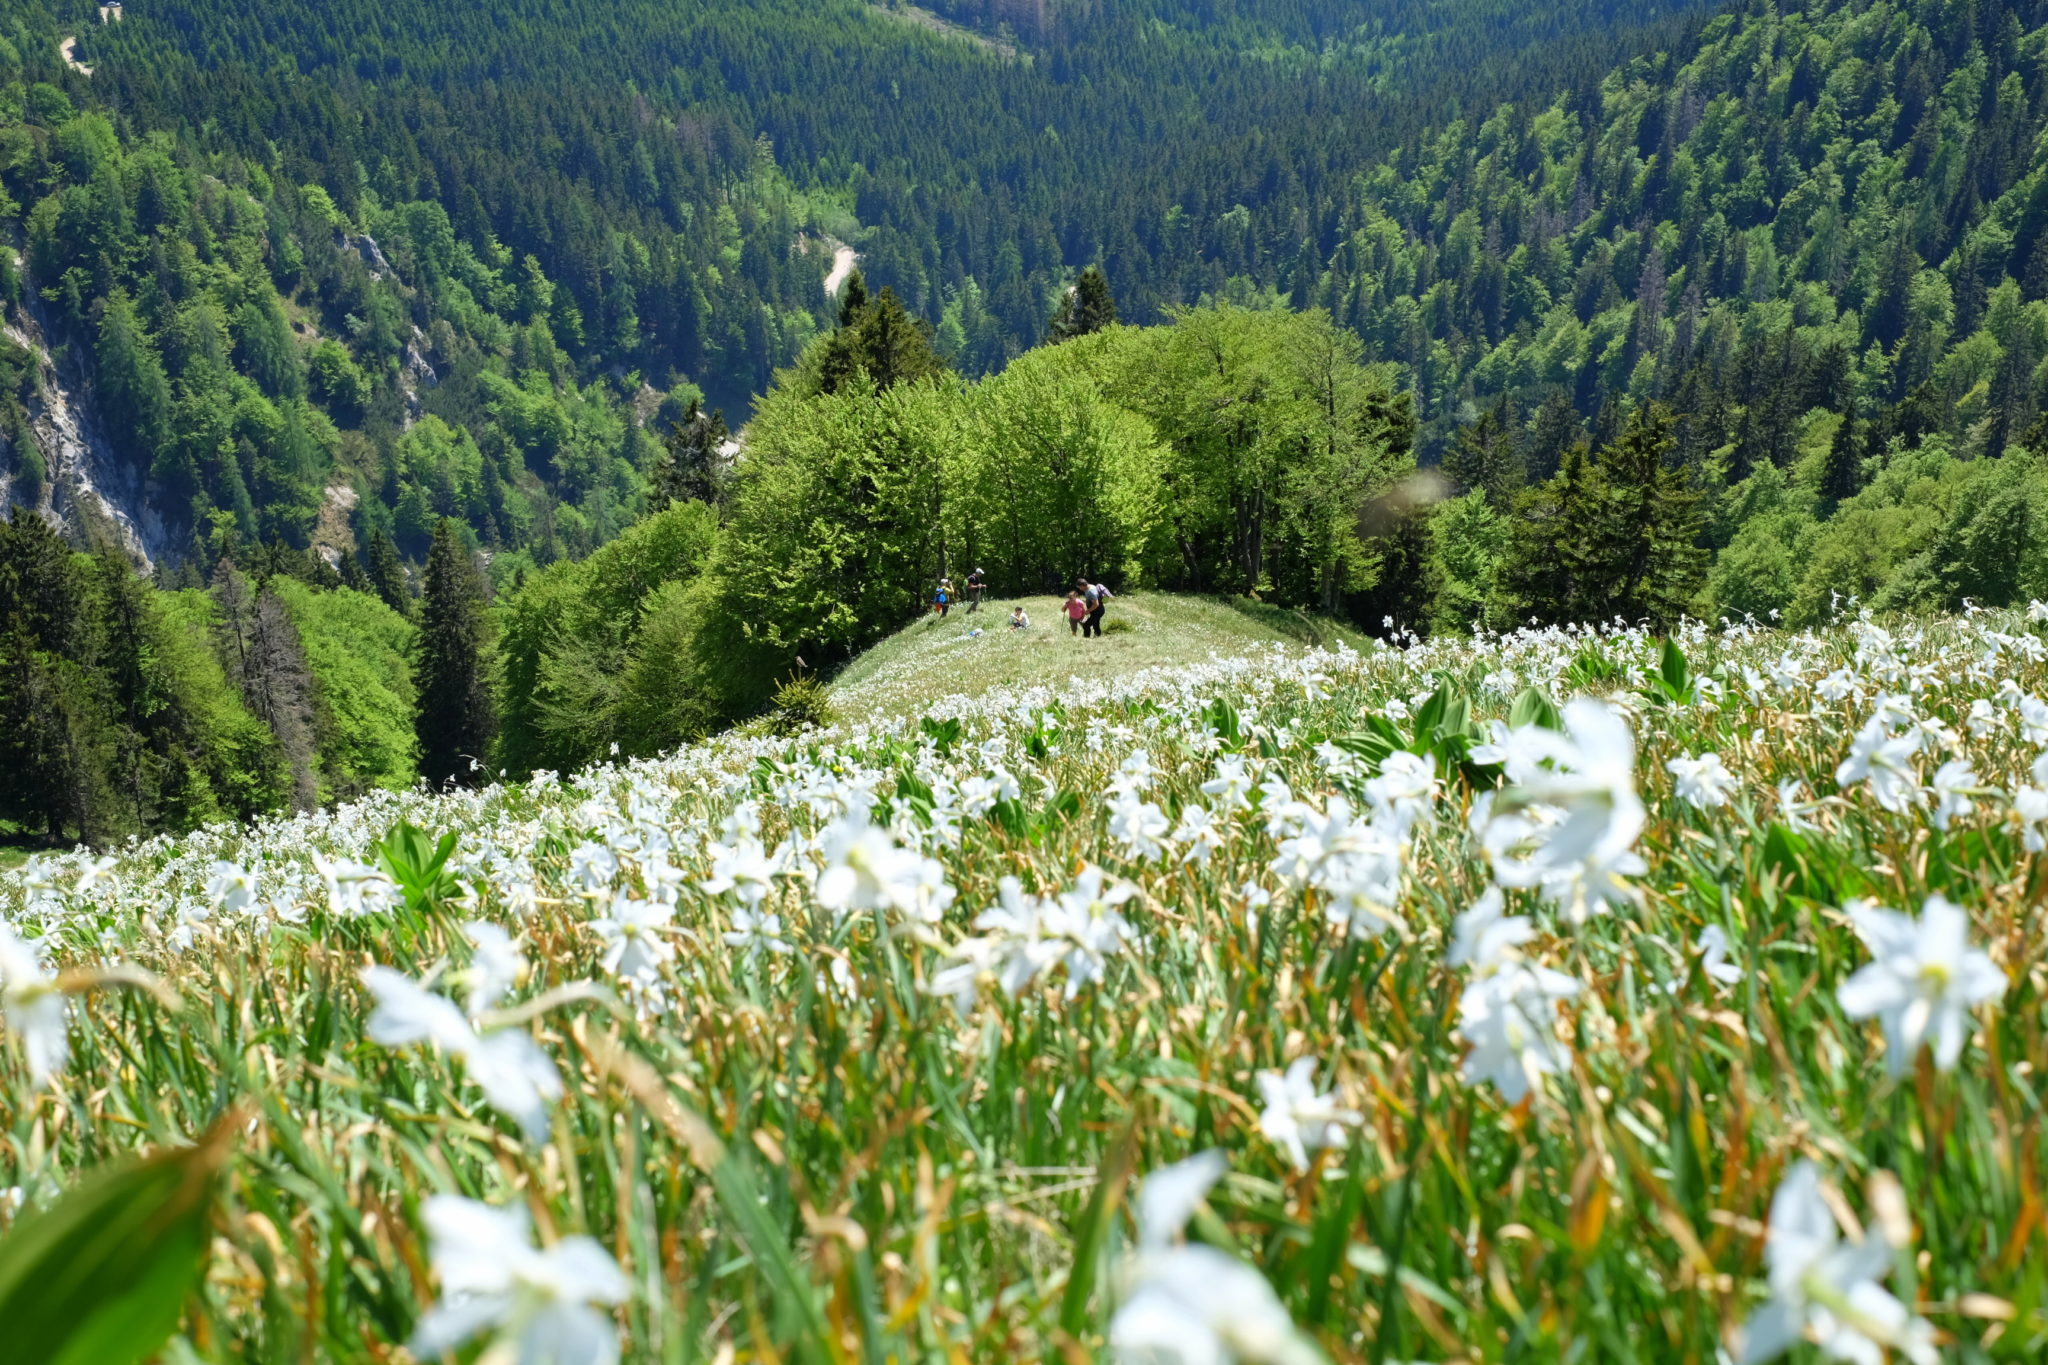 Daffodils in the mountains; Golica, Slovenia